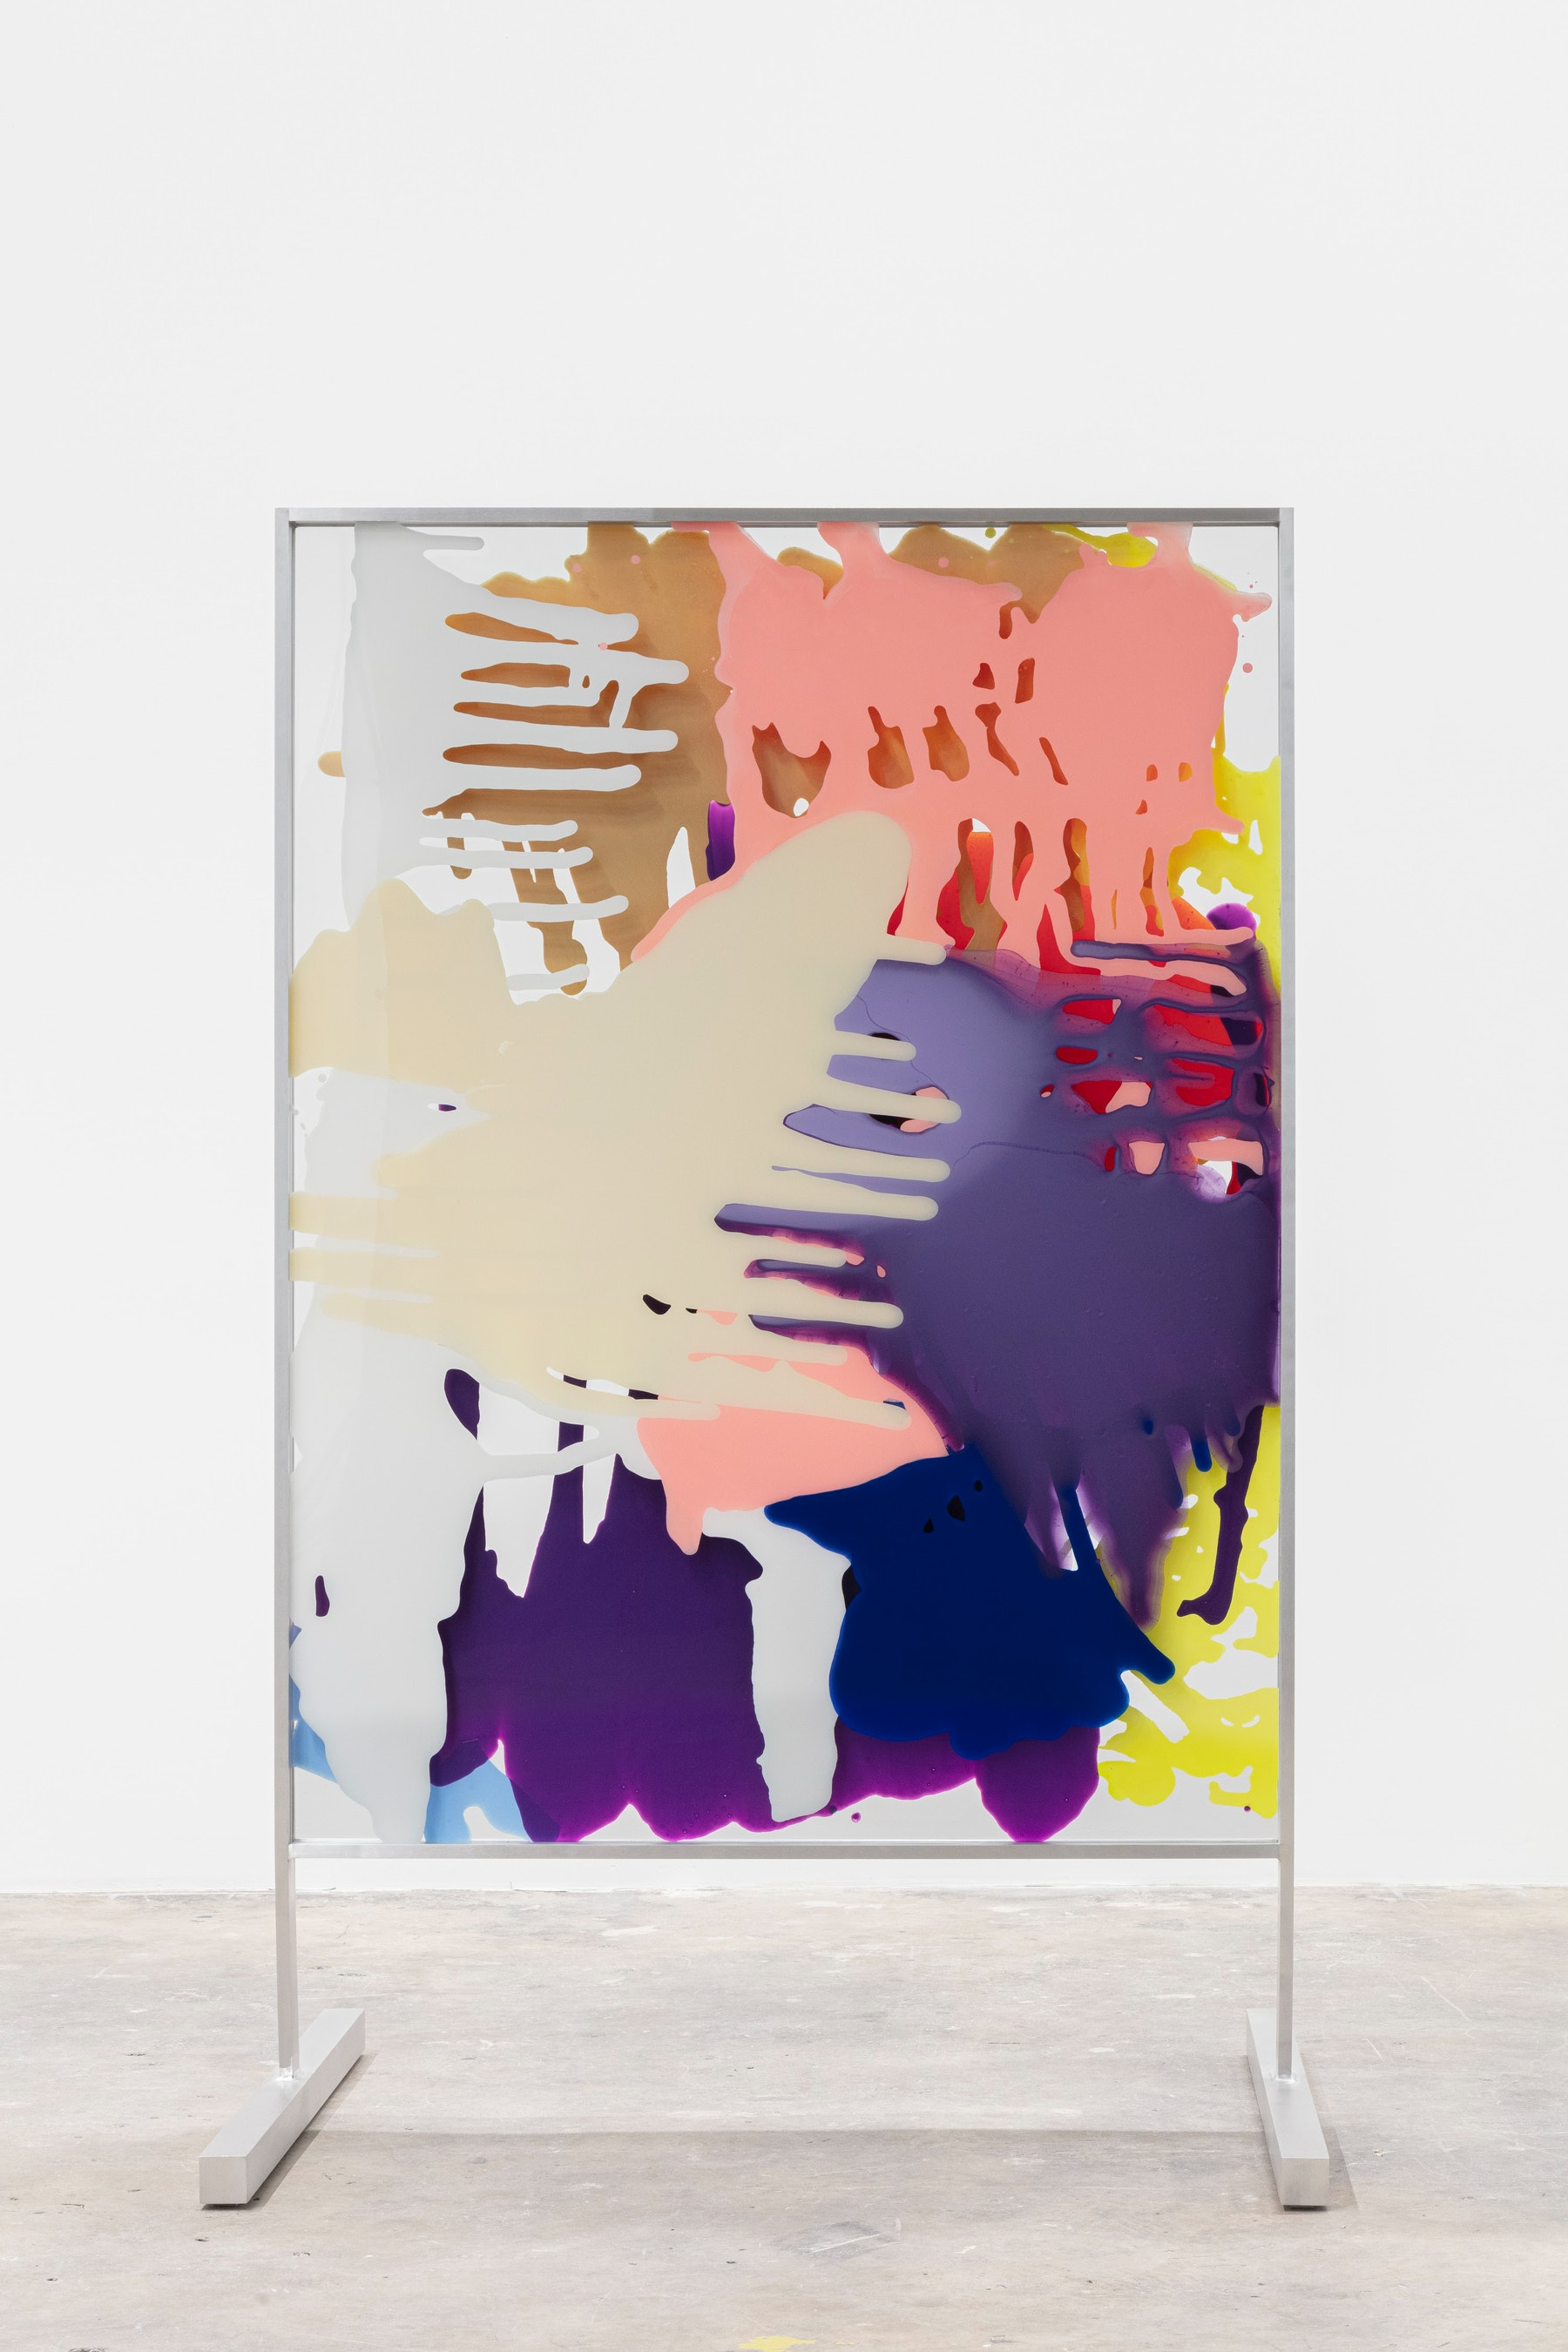 """Yunhee Min """"Vitreous Opacities (Double Floor #3),"""" 2021 Enamel, acrylic on tempered starphire glass with custom aluminum frame 73 ¹⁄₄"""" x 46"""" x 34 ¹⁄₄"""" [HxWxD] (186.06 x 116.84 x 87 cm) Inventory #MIN348 Courtesy of the artist and Vielmetter Los Angeles Photo credit: Evan Bedford"""